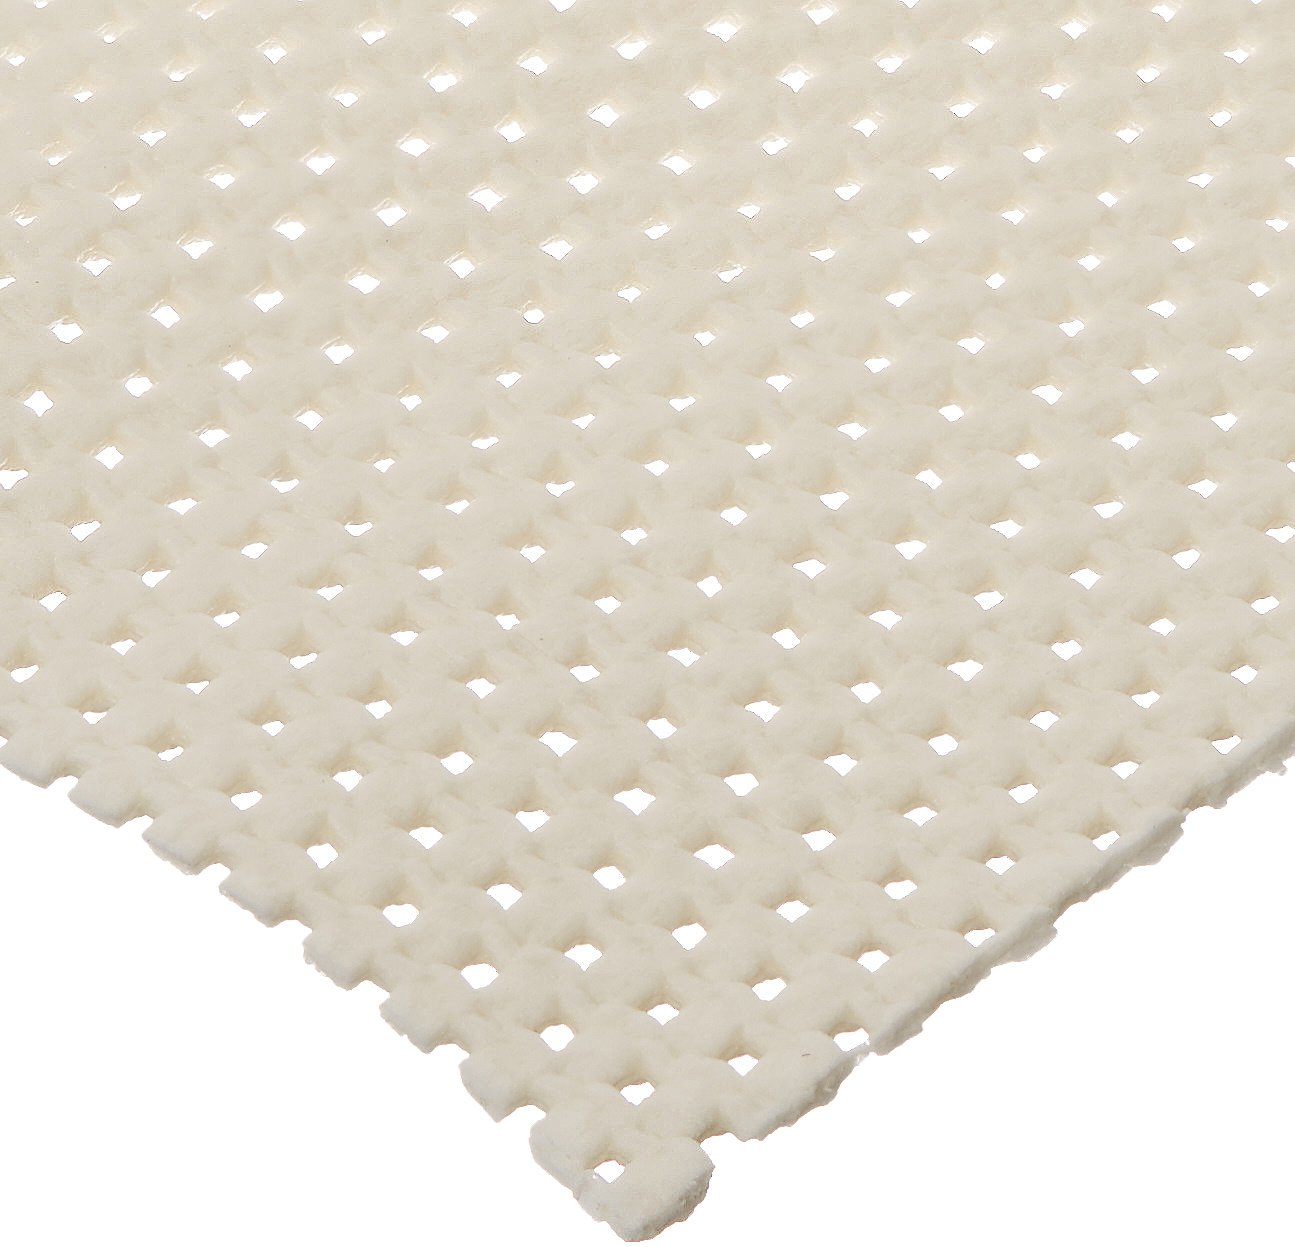 Grip-It Premium Lock Extra Cushioned Non-Slip Rug Pad for Rugs on Hard Surface Floors, 10 by 14-Feet by Grip-It